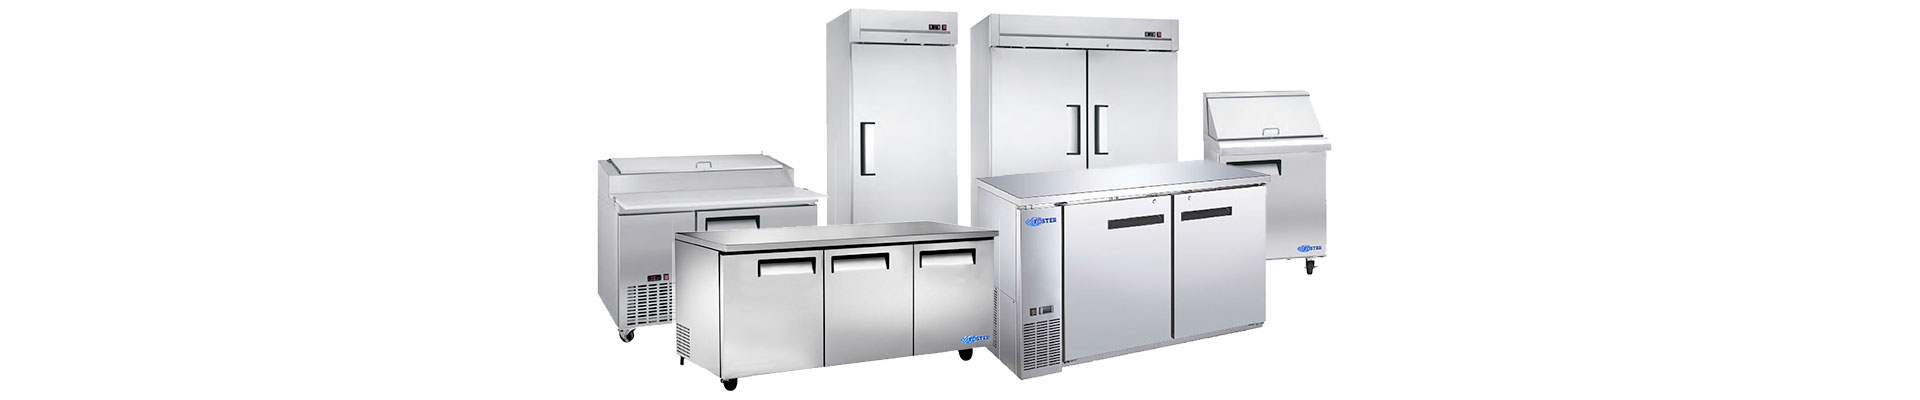 Refrigeration Equipment for the Professional